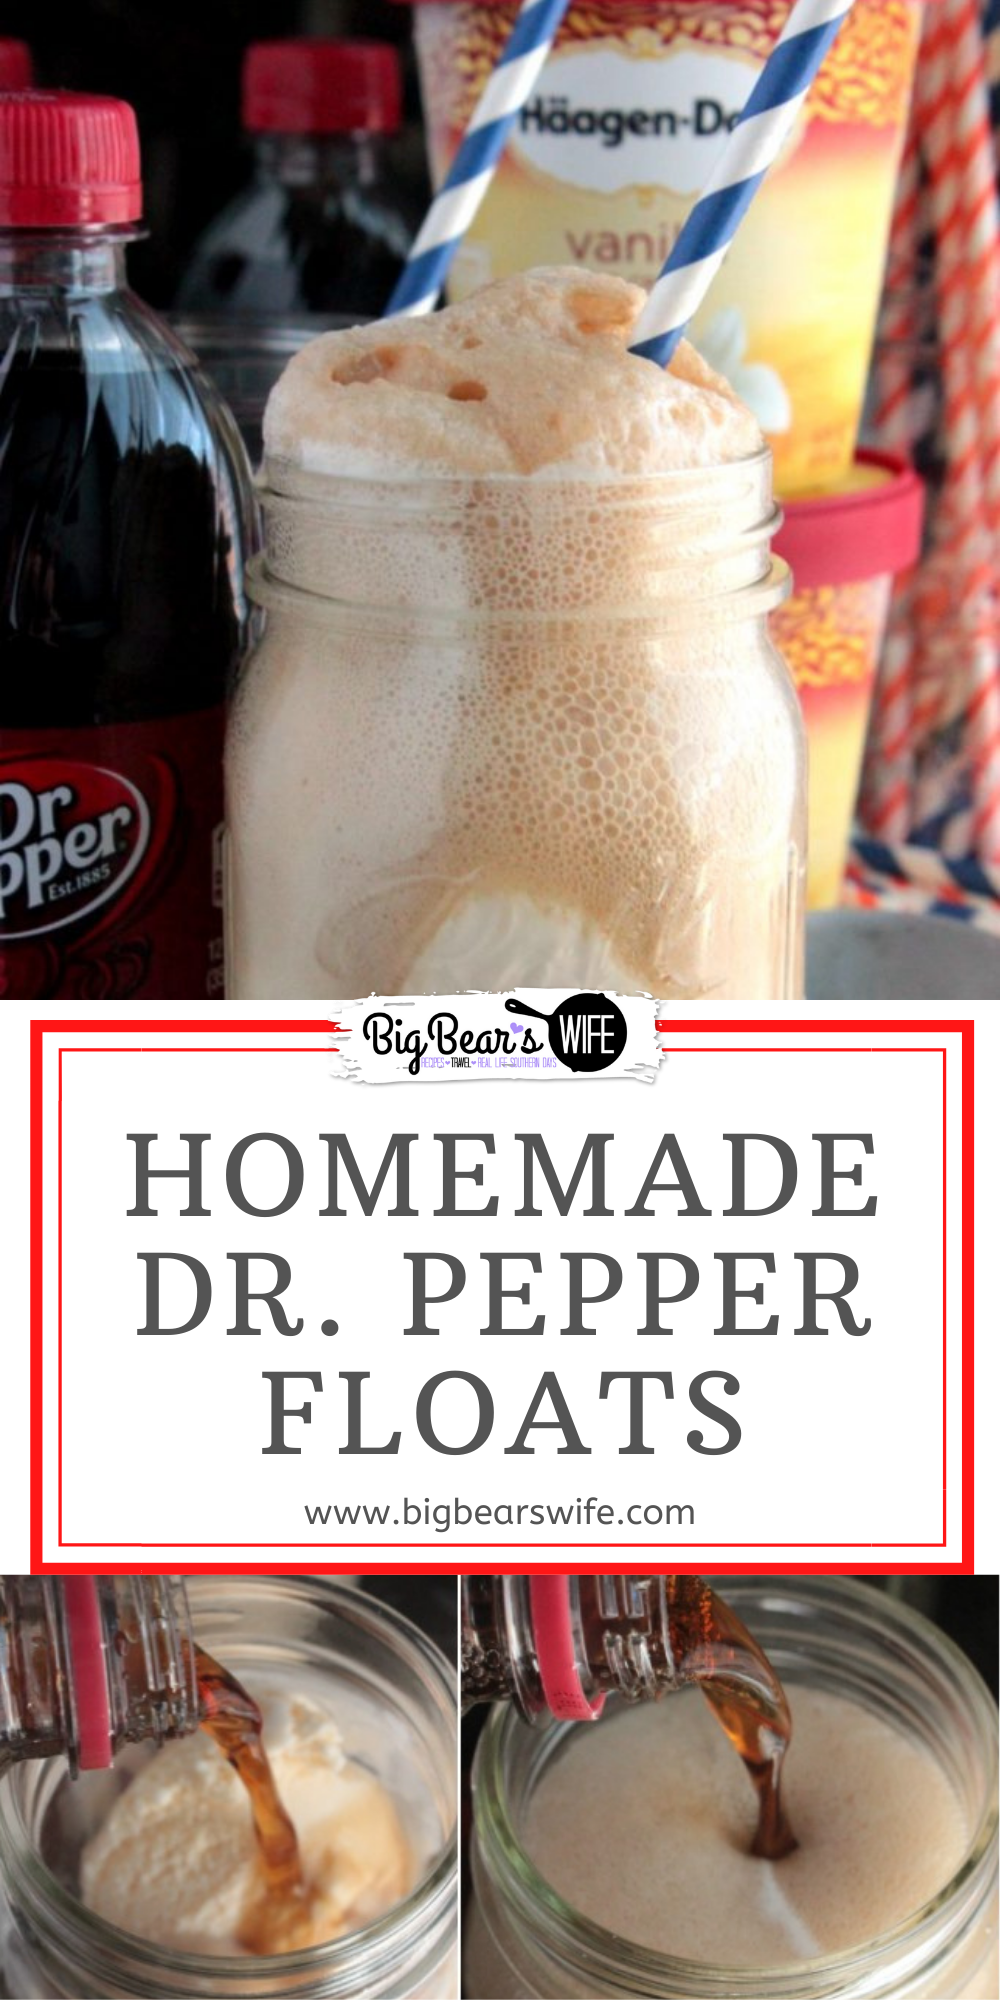 Homemade Dr. Pepper Floats are one of my mom's favorite ice cream treats! I just knew that these would be the perfect treat to make for her Birthday! This is how I make super easy Homemade Dr. Pepper Ice Cream Floats! via @bigbearswife